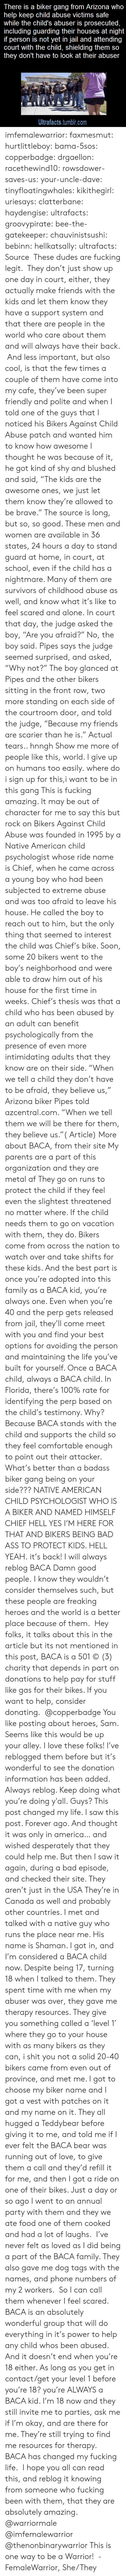 "A Badass: There is a biker gang from Arizona who  help keep child abuse victims safe  while the child's abuser is prosecuted,  including guarding their houses at night  person is not yet in jail and attending  court with the child, shielding them so  they don't have to look at their abuser  Ultrafacts.tumblr.com imfemalewarrior: faxmesmut:  hurtlittleboy:  bama-5sos:  copperbadge:  drgaellon:  racethewind10:  rowsdower-saves-us:  your-uncle-dave:  tinyfloatingwhales:  kikithegirl:  uriesays:  clatterbane:  haydengise:  ultrafacts:  groovypirate:  bee-the-gatekeeper:  chauvinistsushi:  bebinn:  hellkatsally:  ultrafacts:  Source   These dudes are fucking legit.  They don't just show up one day in court, either, they actually make friends with the kids and let them know they have a support system and that there are people in the world who care about them and will always have their back.  And less important, but also cool, is that the few times a couple of them have come into my cafe, they've been super friendly and polite and when I told one of the guys that I noticed his Bikers Against Child Abuse patch and wanted him to know how awesome I thought he was because of it, he got kind of shy and blushed and said, ""The kids are the awesome ones, we just let them know they're allowed to be brave.""  The source is long, but so, so good. These men and women are available in 36 states, 24 hours a day to stand guard at home, in court, at school, even if the child has a nightmare. Many of them are survivors of childhood abuse as well, and know what it's like to feel scared and alone.  In court that day, the judge asked the boy, ""Are you afraid?"" No, the boy said. Pipes says the judge seemed surprised, and asked, ""Why not?"" The boy glanced at Pipes and the other bikers sitting in the front row, two more standing on each side of the courtroom door, and told the judge, ""Because my friends are scarier than he is.""   Actual tears.. hnngh  Show me more of people like this, world. I give up on humans too easily.  where do i sign up for this,i want to be in this gang    This is fucking amazing. It may be out of character for me to say this but rock on  Bikers Against Child Abuse was founded in 1995 by a Native American child psychologist whose ride name is Chief, when he came across a young boy who had been subjected to extreme abuse and was too afraid to leave his house. He called the boy to reach out to him, but the only thing that seemed to interest the child was Chief's bike. Soon, some 20 bikers went to the boy's neighborhood and were able to draw him out of his house for the first time in weeks. Chief's thesis was that a child who has been abused by an adult can benefit psychologically from the presence of even more intimidating adults that they know are on their side. ""When we tell a child they don't have to be afraid, they believe us,"" Arizona biker Pipes told azcentral.com. ""When we tell them we will be there for them, they believe us.""( Article) More about BACA, from their site  My parents are a part of this organization and they are metal af They go on runs to protect the child if they feel even the slightest threatened no matter where. If the child needs them to go on vacation with them, they do. Bikers come from across the nation to watch over and take shifts for these kids. And the best part is once you're adopted into this family as a BACA kid, you're always one. Even when you're 40 and the perp gets released from jail, they'll come meet with you and find your best options for avoiding the person and maintaining the life you've built for yourself. Once a BACA child, always a BACA child. In Florida, there's 100% rate for identifying the perp based on the child's testimony. Why? Because BACA stands with the child and supports the child so they feel comfortable enough to point out their attacker.  What's better than a badass biker gang being on your side???  NATIVE AMERICAN CHILD PSYCHOLOGIST WHO IS A BIKER AND NAMED HIMSELF CHIEF HELL YES I'M HERE FOR THAT AND BIKERS BEING BAD ASS TO PROTECT KIDS. HELL YEAH.  it's back! I will always reblog BACA  Damn good people.  I know they wouldn't consider themselves such, but these people are freaking heroes and the world is a better place because of them.   Hey folks, it talks about this in the article but its not mentioned in this post, BACA is a 501 © (3) charity that depends in part on donations to help pay for stuff like gas for their bikes. If you want to help, consider donating.   @copperbadge You like posting about heroes, Sam. Seems like this would be up your alley.  I love these folks! I've reblogged them before but it's wonderful to see the donation information has been added.    Always reblog. Keep doing what you're doing y'all.  Guys? This post changed my life. I saw this post. Forever ago. And thought it was only in america… and wished desperately that they could help me. But then I saw it again, during a bad episode, and checked their site. They aren't just in the USA They're in Canada as well and probably other countries. I met and talked with a native guy who runs the place near me. His name is Shaman. I got in, and I'm considered a BACA child now. Despite being 17, turning 18 when I talked to them. They spent time with me when my abuser was over, they gave me therapy resources. They give you something called a 'level 1′ where they go to your house with as many bikers as they can, i shit you not a solid 20-40 bikers came from even out of province, and met me. I got to choose my biker name and I got a vest with patches on it and my name on it. They all hugged a Teddybear before giving it to me, and told me if I ever felt the BACA bear was running out of love, to give them a call and they'd refill it for me, and then I got a ride on one of their bikes. Just a day or so ago I went to an annual party with them and they we ate food one of them cooked and had a lot of laughs.  I've never felt as loved as I did being a part of the BACA family. They also gave me dog tags with the names, and phone numbers of my 2 workers.  So I can call them whenever I feel scared.  BACA is an absolutely wonderful group that will do everything in it's power to help any child whos been abused.  And it doesn't end when you're 18 either. As long as you get in contact/get your level 1 before you're 18? you're ALWAYS a BACA kid. I'm 18 now and they still invite me to parties, ask me if I'm okay, and are there for me. They're still trying to find me resources for therapy.  BACA has changed my fucking life.  I hope you all can read this, and reblog it knowing from someone who fucking been with them, that they are absolutely amazing.   @warriormale @imfemalewarrior @thenonbinarywarrior  This is one way to be a Warrior!  -FemaleWarrior, She/They"